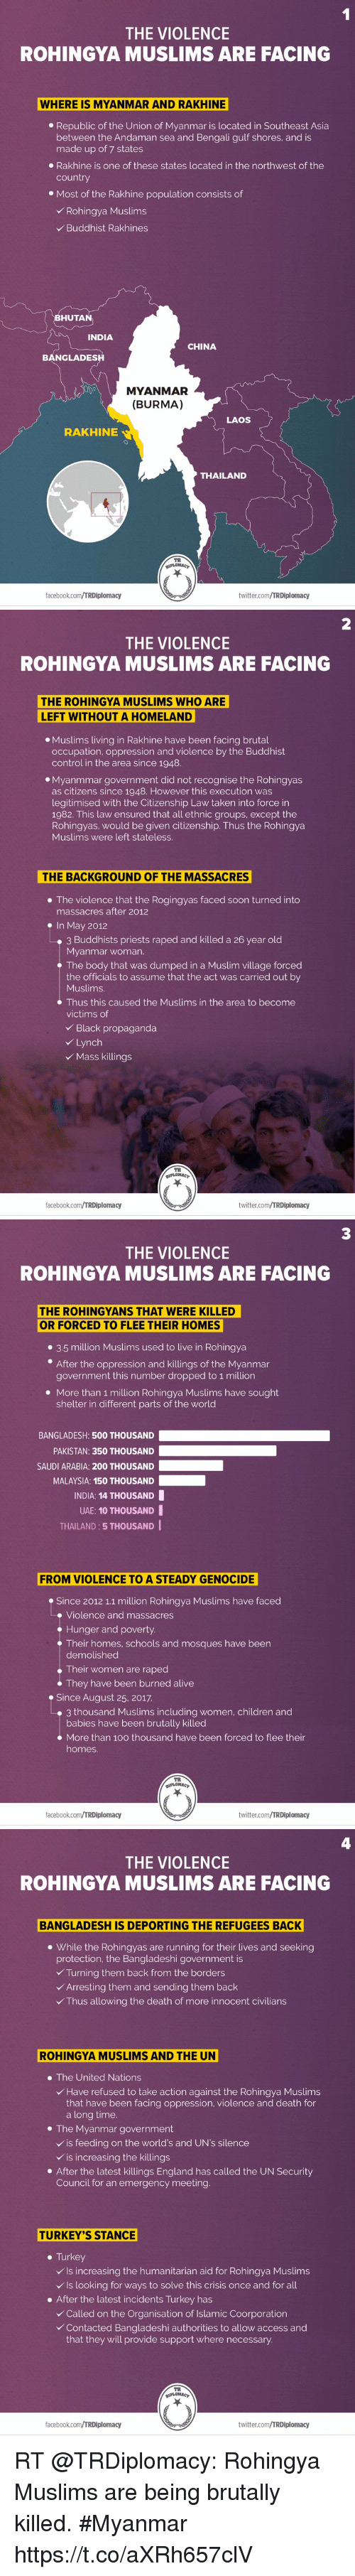 Turkeyism: THE VIOLENCE  ROHINGYA MUSLIMS ARE FACING  WHERE IS MYANMAR AND RAKHINE  . Republic of the Union of Myanmar is located in Southeast Asia  between the Andaman sea and Bengali gulf shores, and is  made up of 7 states  - Rakhine is one of these states located in the northwest of the  country  Most of the Rakhine population consists of  Rohingya Muslims  Buddhist Rakhines  BHUTAN  INDIA  CHINA  BANGLADESH  MYANMAR  (BURMA)  LAOS  RAKHINE  THAILAND  TR  facebook.com/TRDiplomacy  twitter.com/TRDiplomacy   2  THE VIOLENCE  ROHINGYA MUSLIMS ARE FACING  THE ROHINGYA MUSLIMS WHO ARE  LEFT WITHOUT A HOMELAND  . Muslims living in Rakhine have been facing brutal  occupation, oppression and violence by the Buddhist  control in the area since 1948  eMyanmmar government did not recognise the Rohingyas  as citizens since 1948. However this execution was  legitimised with the Citizenship Law taken into force in  1982. This law ensured that all ethnic groups, except the  Rohingyas, would be given citizenship. Thus the Rohingya  Muslims were left stateless  THE BACKGROUND OF THE MASSACRES  The violence that the Rogingyas faced soon turned into  massacres after 2012  e In May 2012  3 Buddhists priests raped and killed a 26 year old  Myanmar woman  The body that was dumped in a Muslim village forced  the officials to assume that the act was carried out by  Muslims.  Thus this caused the Muslims in the area to become  victims of  v Black propaganda  Lynch  Mass killings  TR  facebook.com/TRDiplomacy  twitter.com/TRDiplomacy   3  THE VIOLENCE  ROHINGYA MUSLIMS ARE FACING  THE ROHINGYANS THAT WERE KILLED  OR FORCED TO FLEE THEIR HOMES  #3.5 million Muslims used to live in Rohingya  After the oppression and killings of the Myanmar  government this number dropped to 1 million  More than 1 million Rohingya Muslims have sought  shelter in different parts of the world  BANGLADESH: 500 THOUSAND  PAKISTAN: 350 THOUSAND  SAUDI ARABIA: 200 THOUSAND-  MALAYSIA: 150 THOUSAND  INDIA: 14 THOU